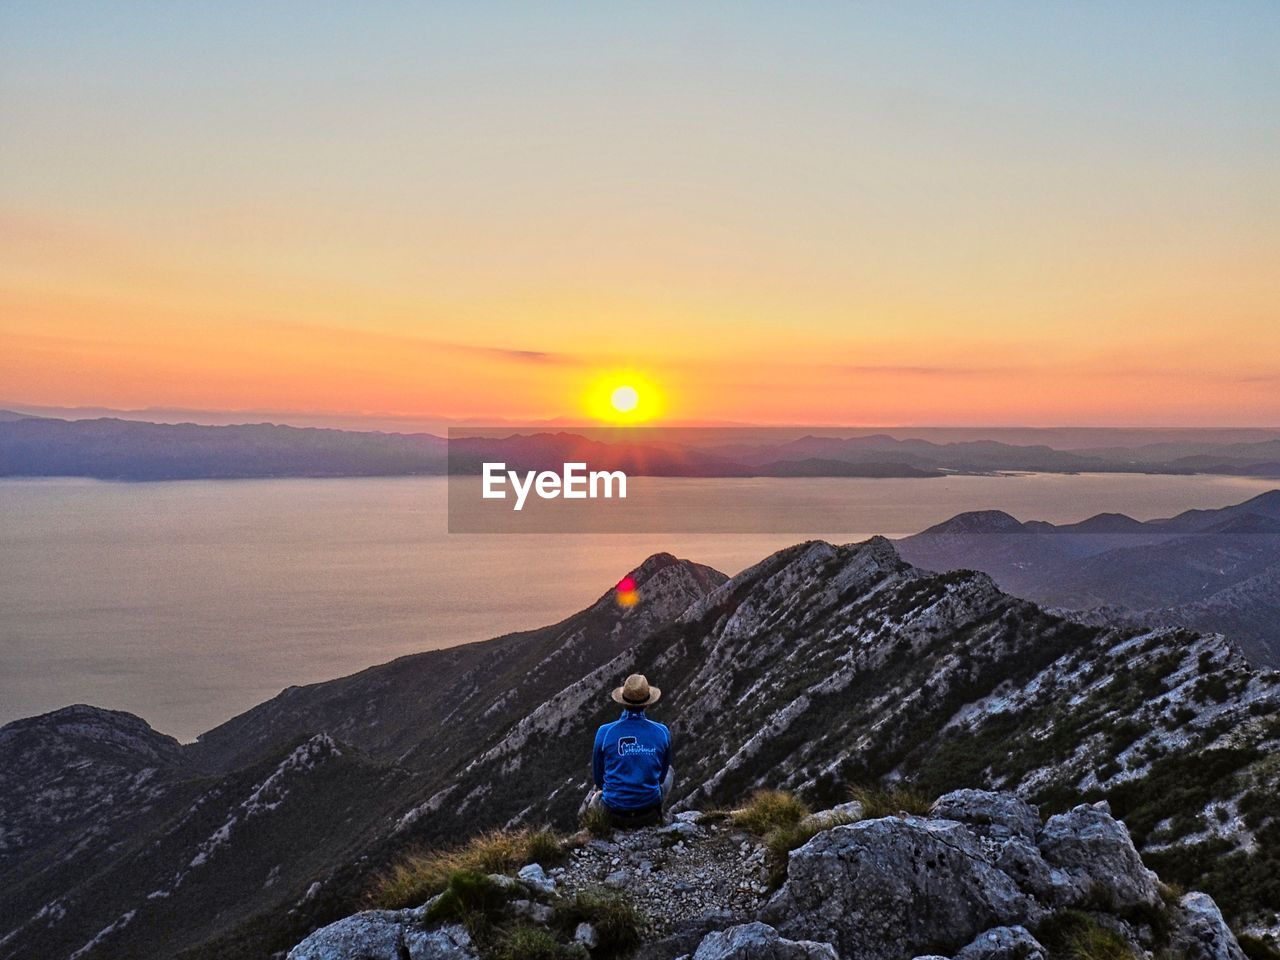 sunset, sky, beauty in nature, scenics - nature, leisure activity, real people, tranquility, mountain, lifestyles, tranquil scene, non-urban scene, orange color, sun, idyllic, rear view, one person, nature, rock, rock - object, solid, mountain range, outdoors